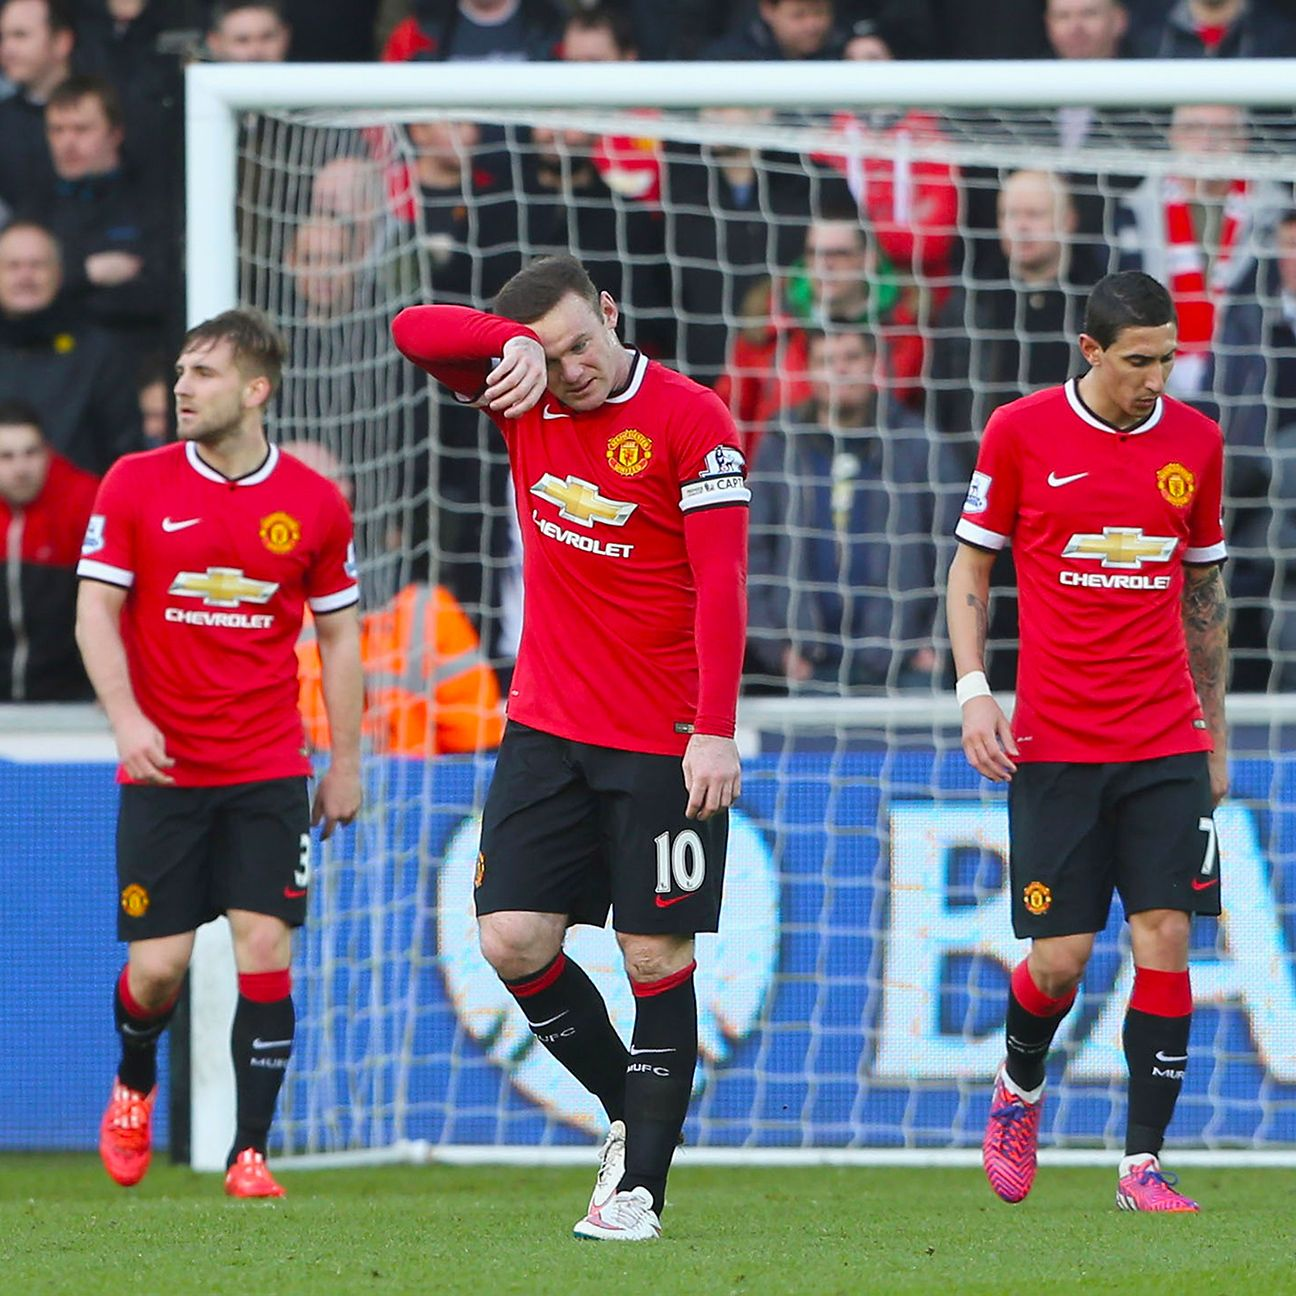 It was dejection again for Wayne Rooney and Manchester United against Swansea, as Louis van Gaal's men lost to the Welsh side for the second time this season.